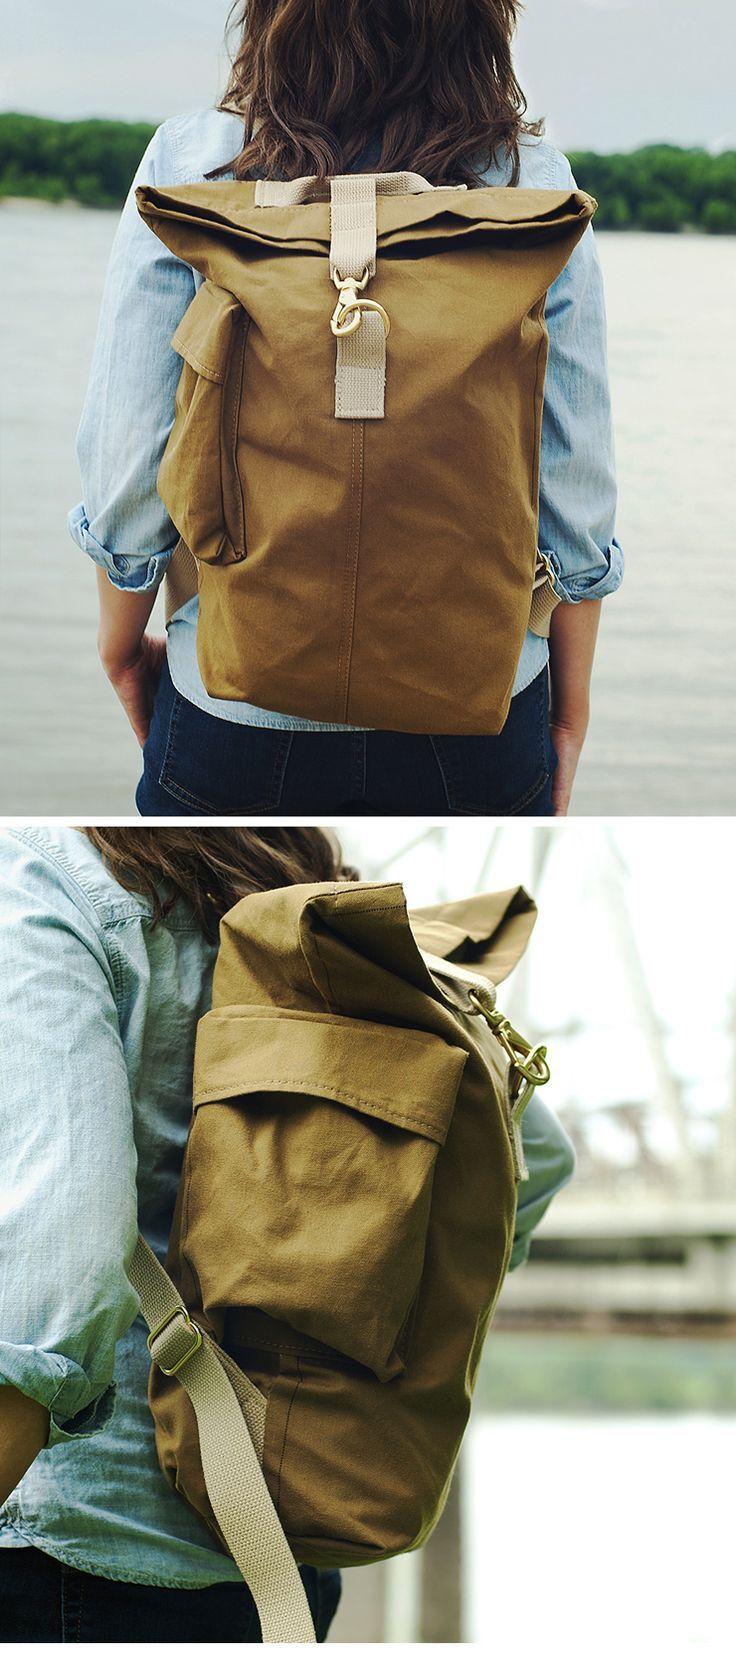 Canvas Day Bag. If I go back to school I'm getting one of these.